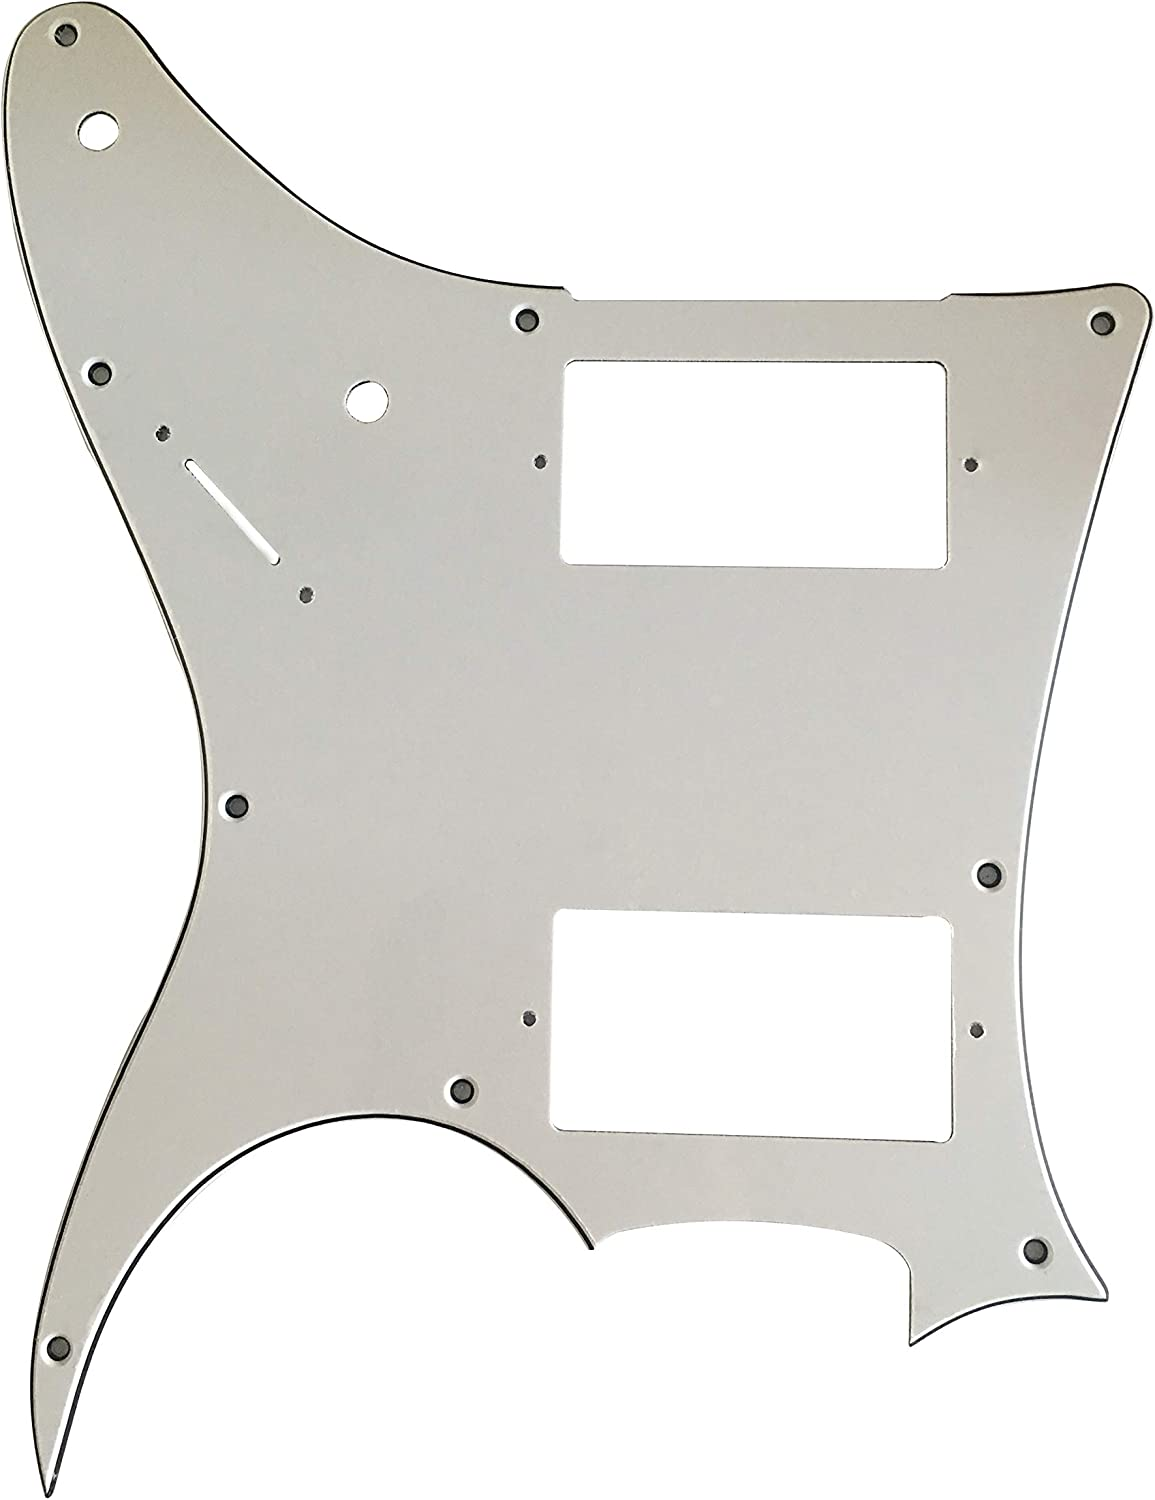 3 Ply White Guitar Parts For Ibanez MIJ RG X20 Style Guitar Pickguard